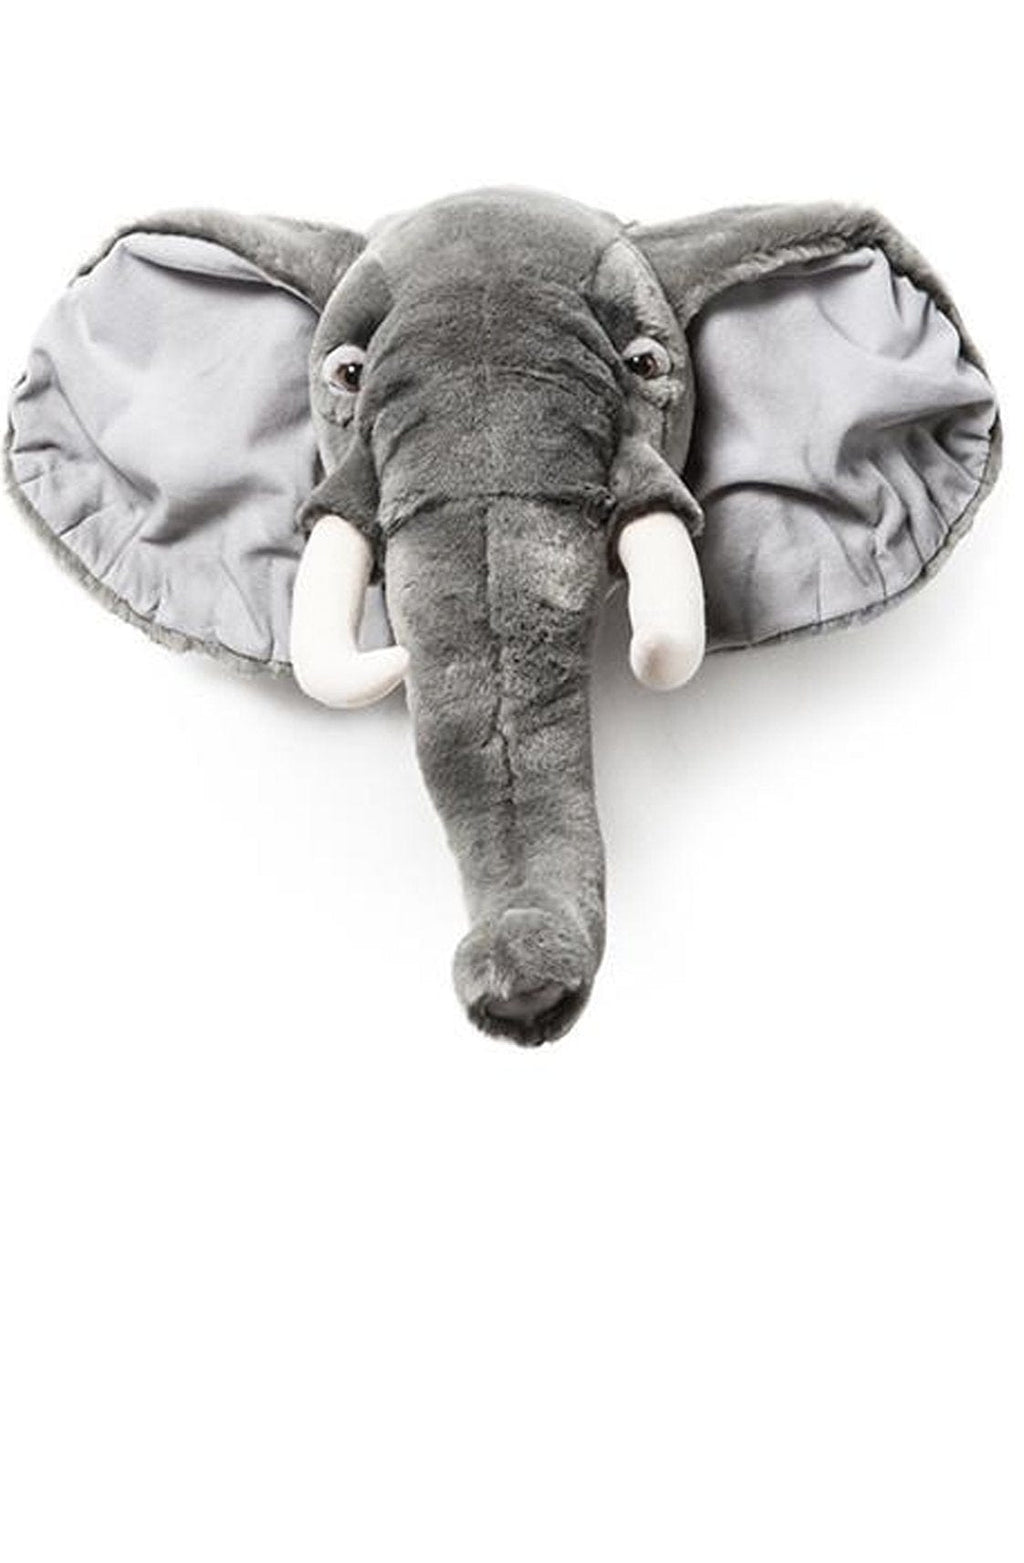 Wild and Soft Plush Wall Head George the Elephant (PRE-ORDER AUG)